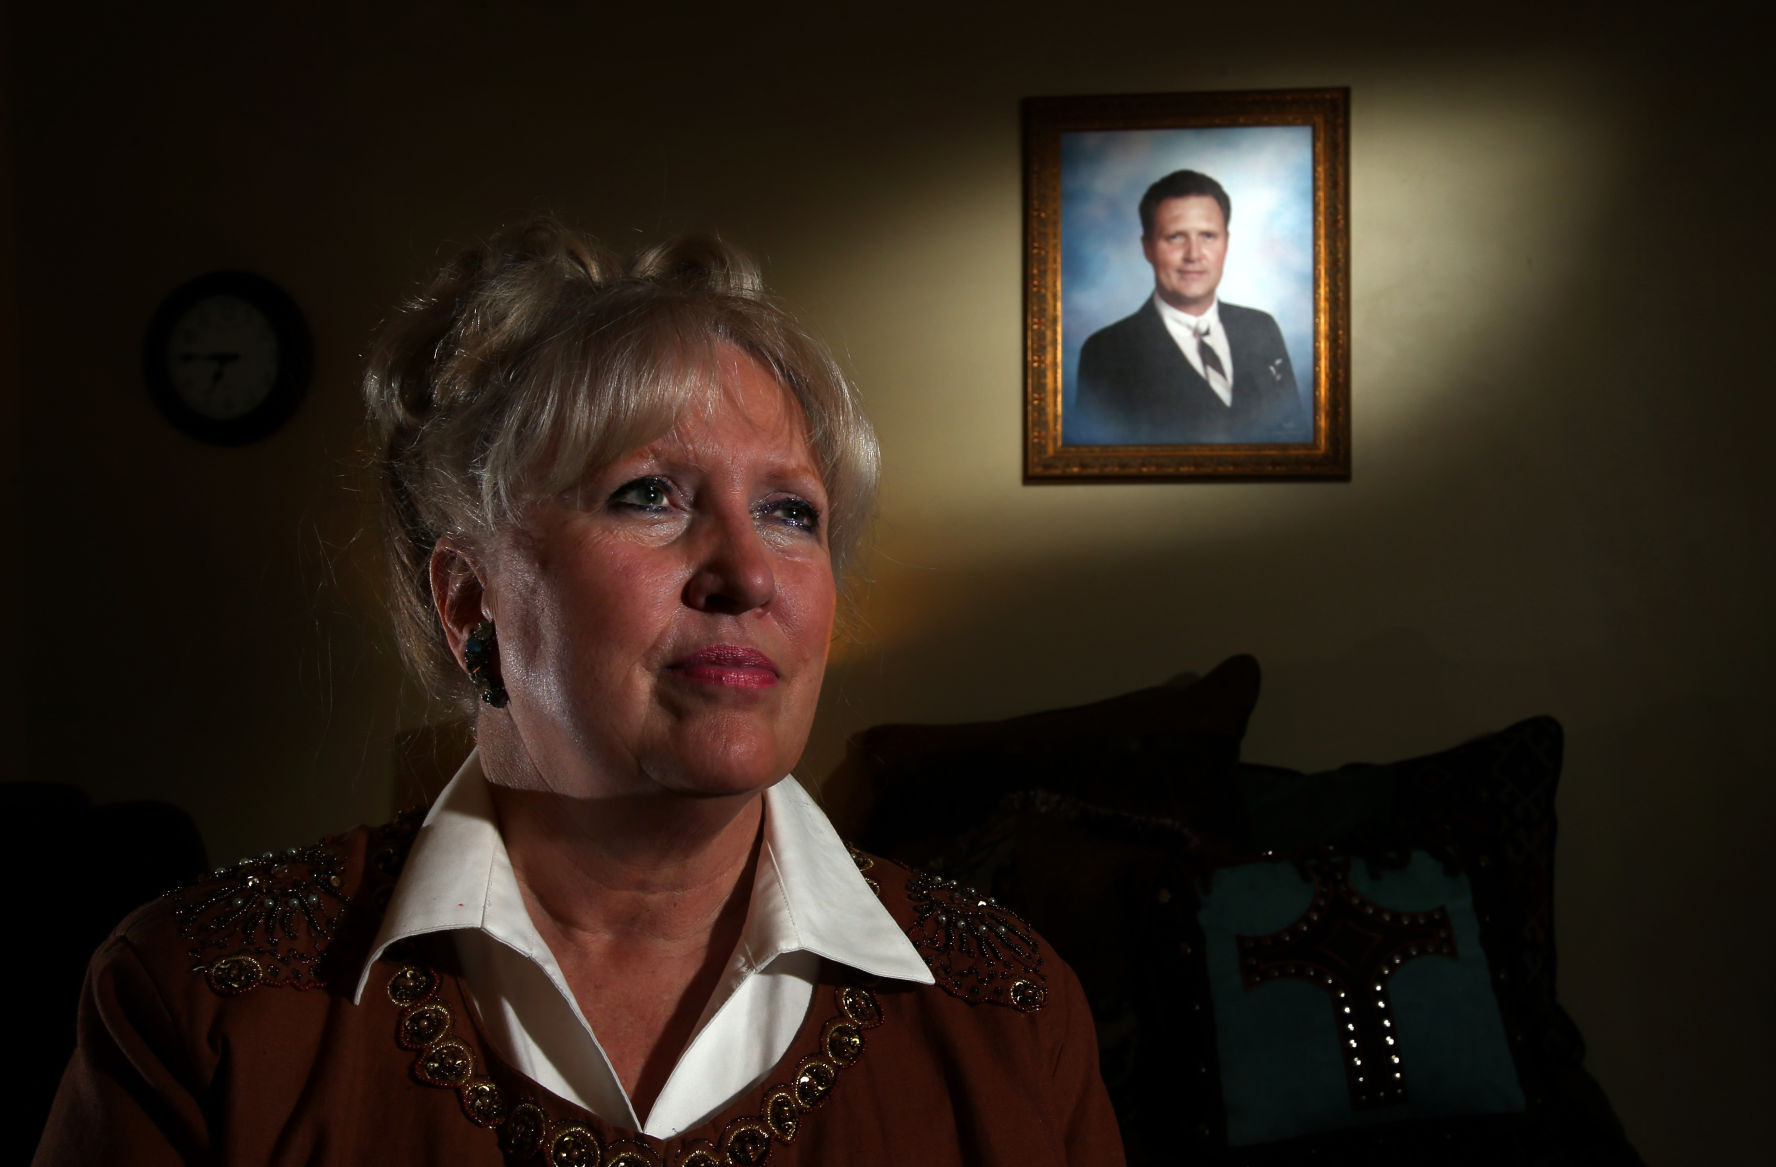 Arizona adult protection has no power galleries